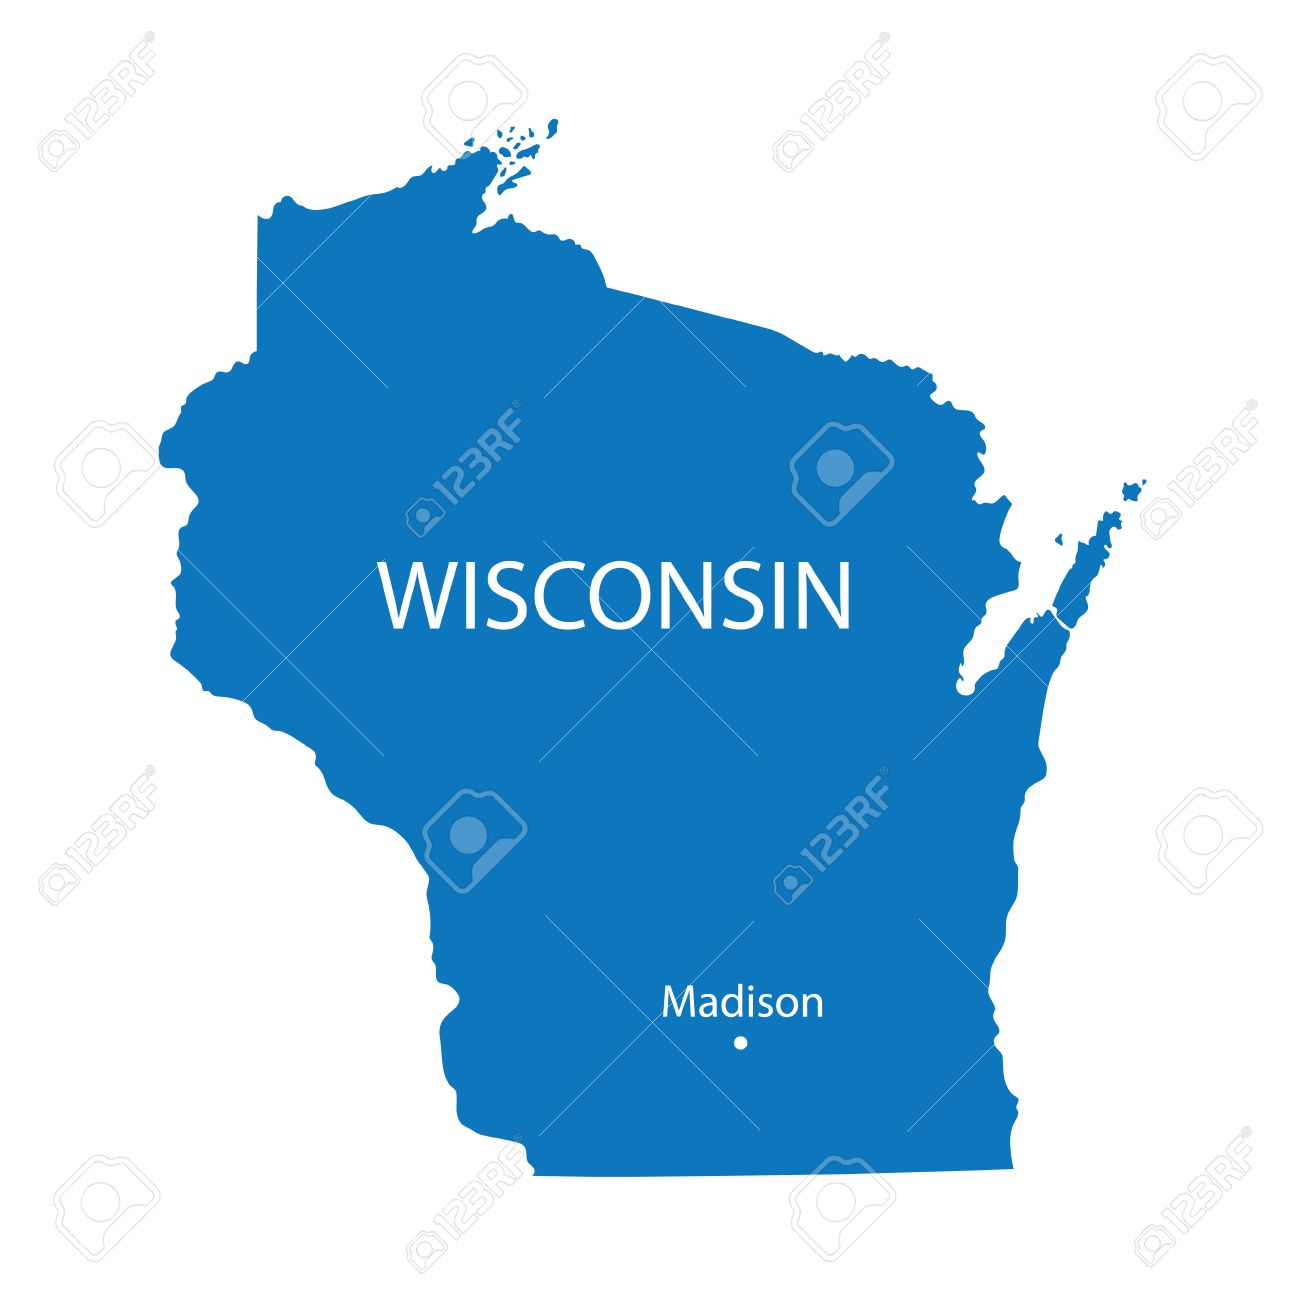 Blue Map Of Wisconsin With Indication Of Madison Royalty Free - Map of wisconsin